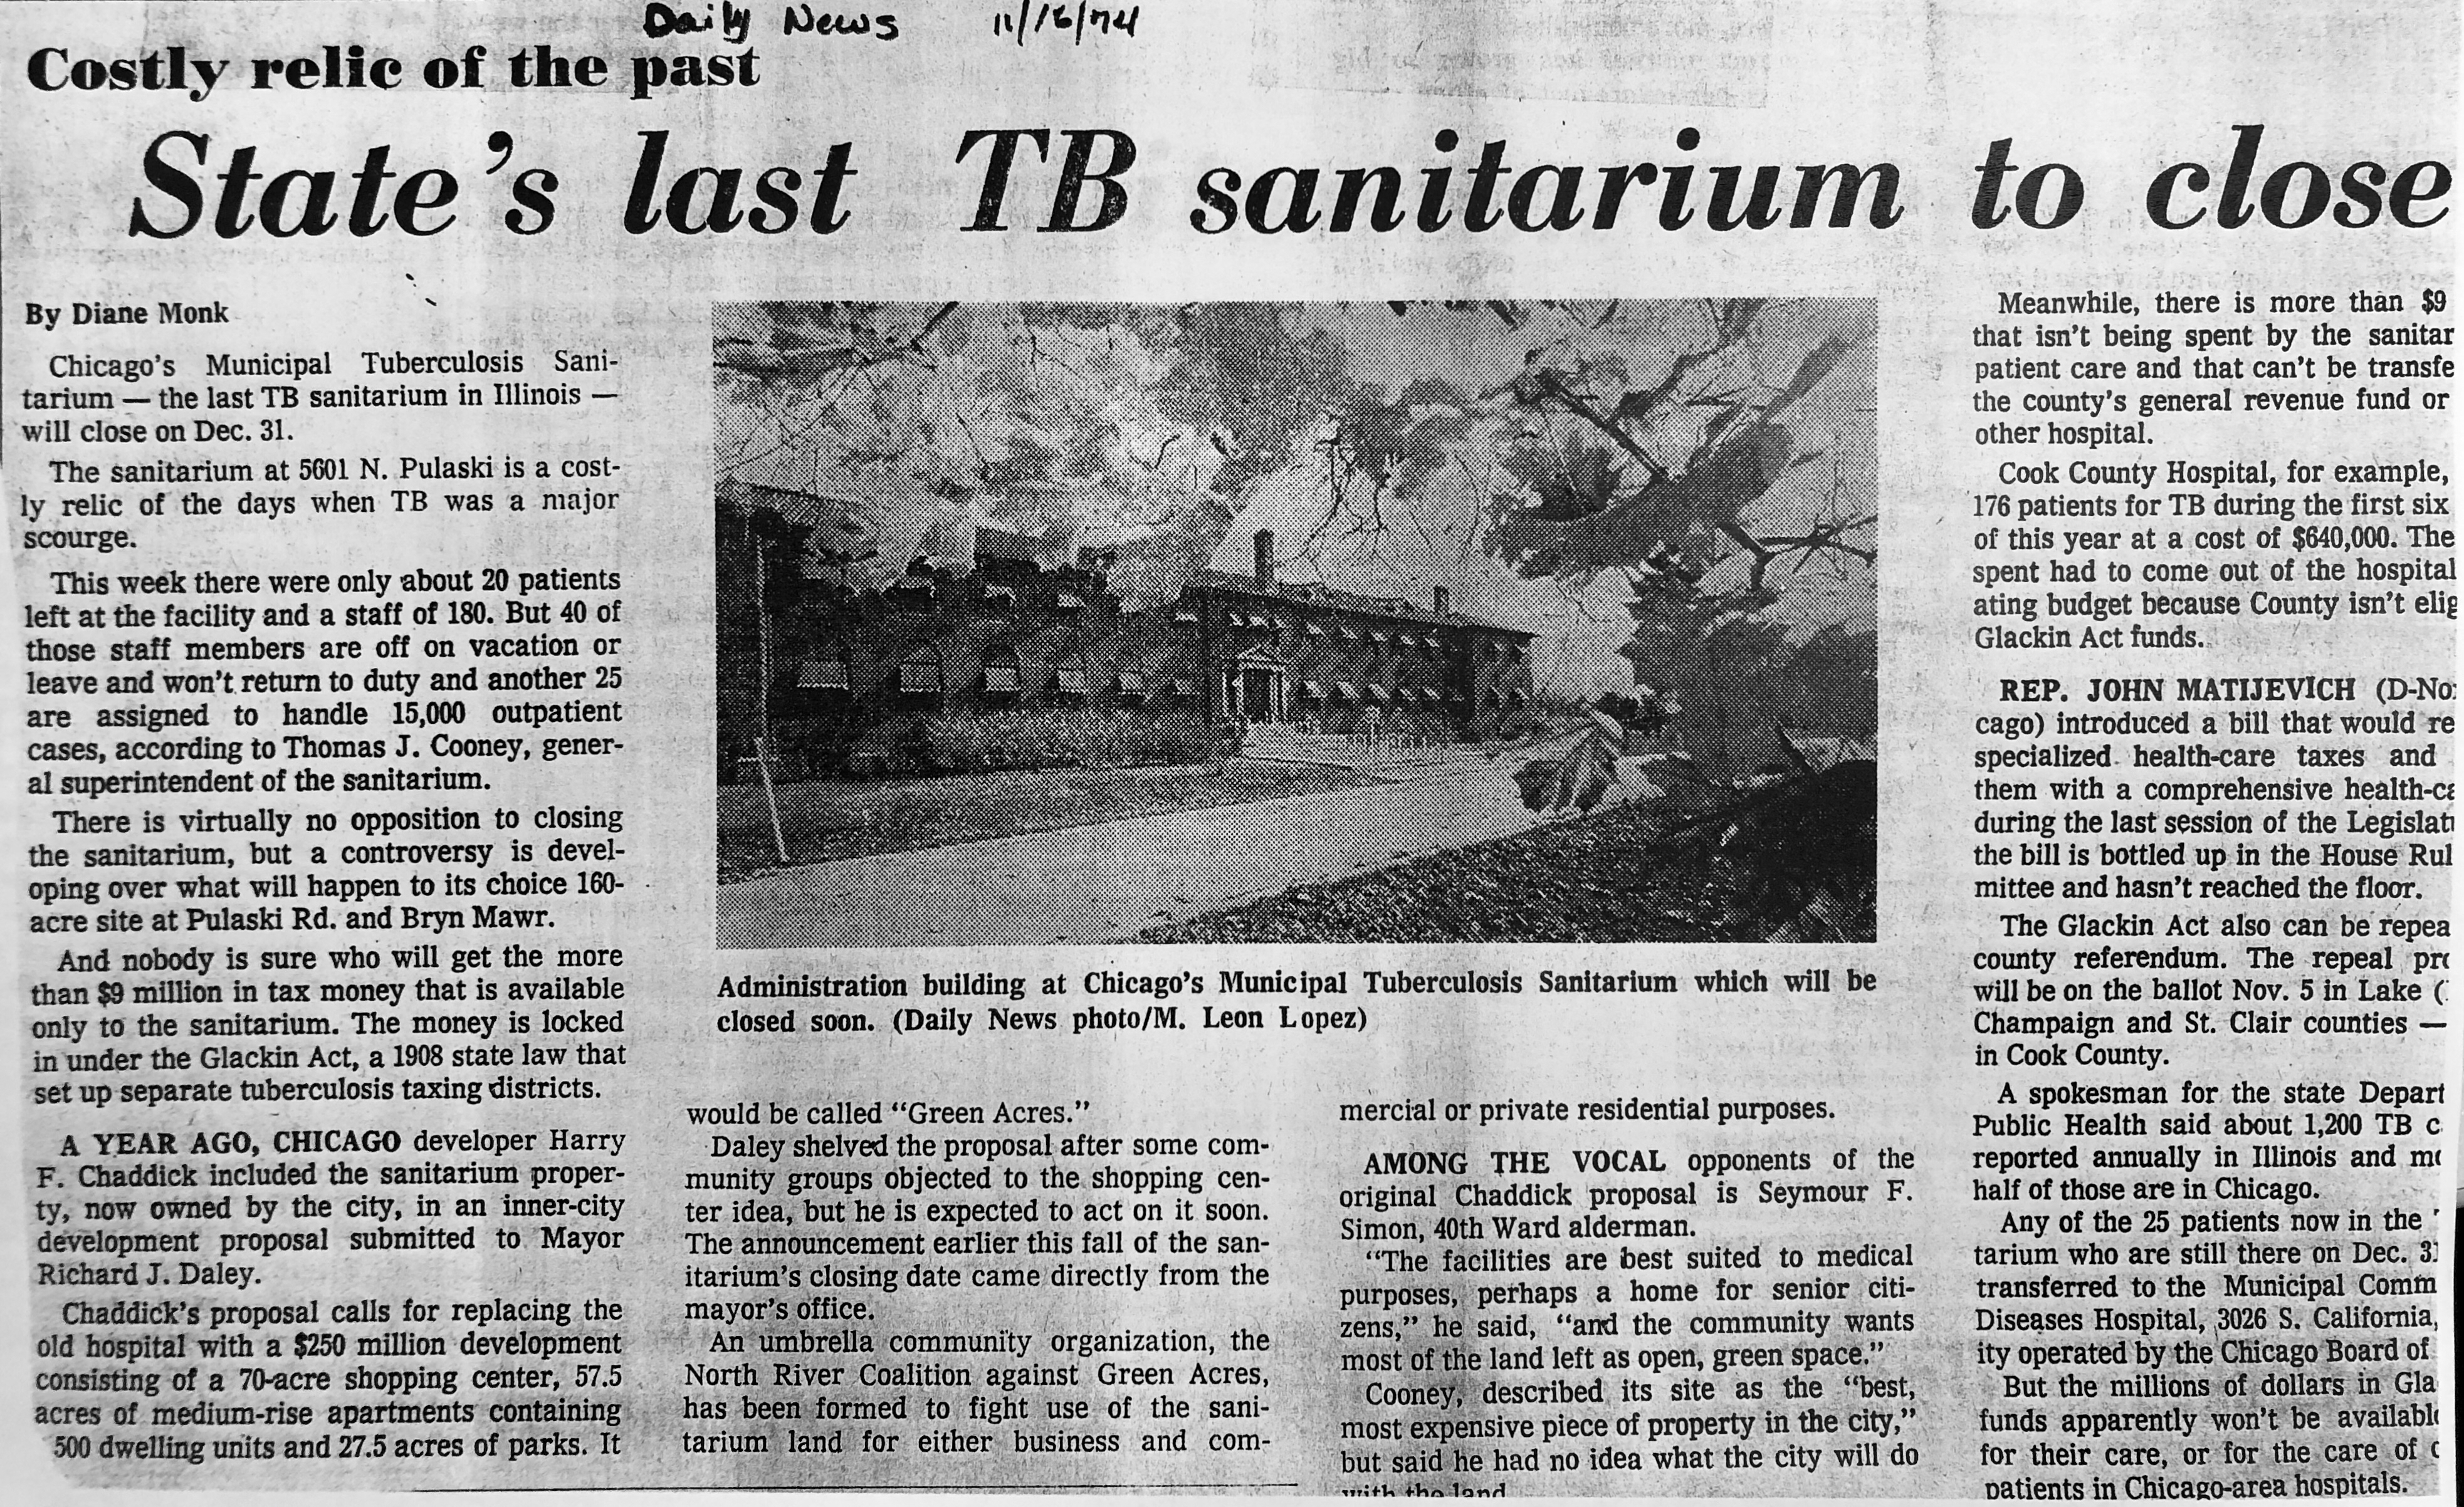 A November 1974 Daily News article details the closing of the sanitarium, and the controversy over what to do with the campus.(Courtesy Chicago Sun-Times)